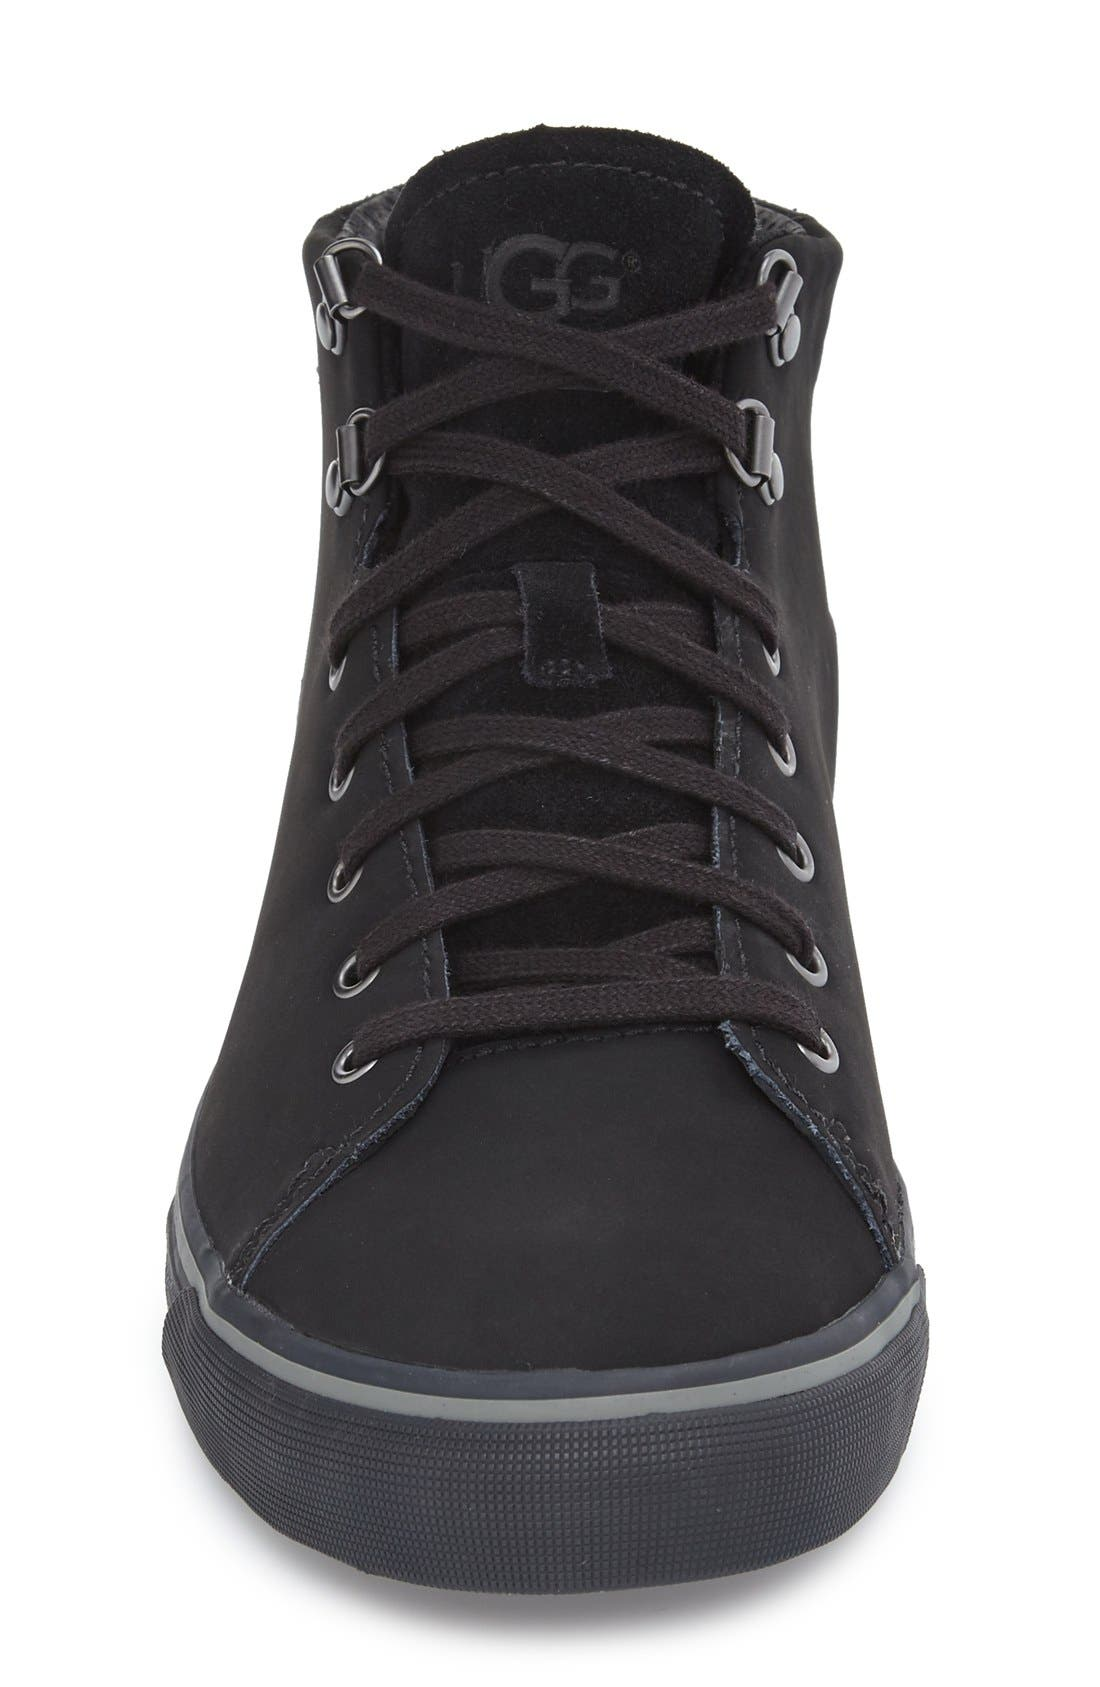 Alternate Image 3  - UGG® 'Hoyt' Waterproof High Top Sneaker (Men)